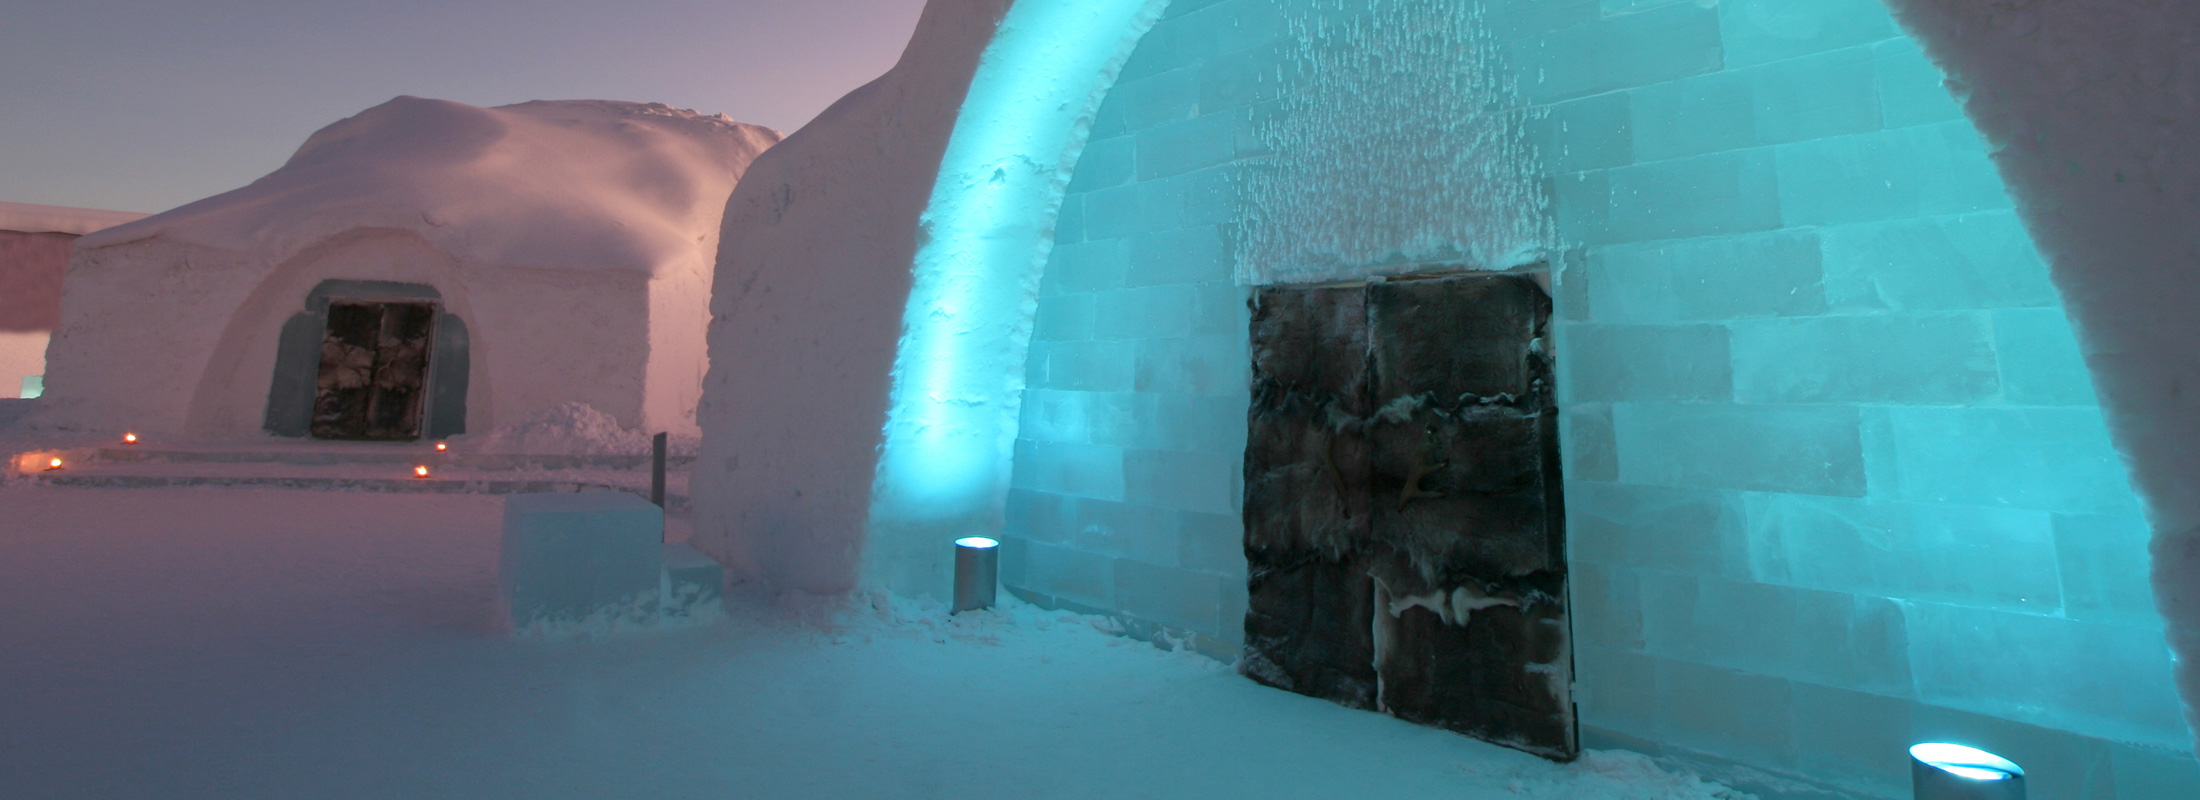 Promotion and incentive travel ideas - Top 10 'coolest' ice hotels from around the world